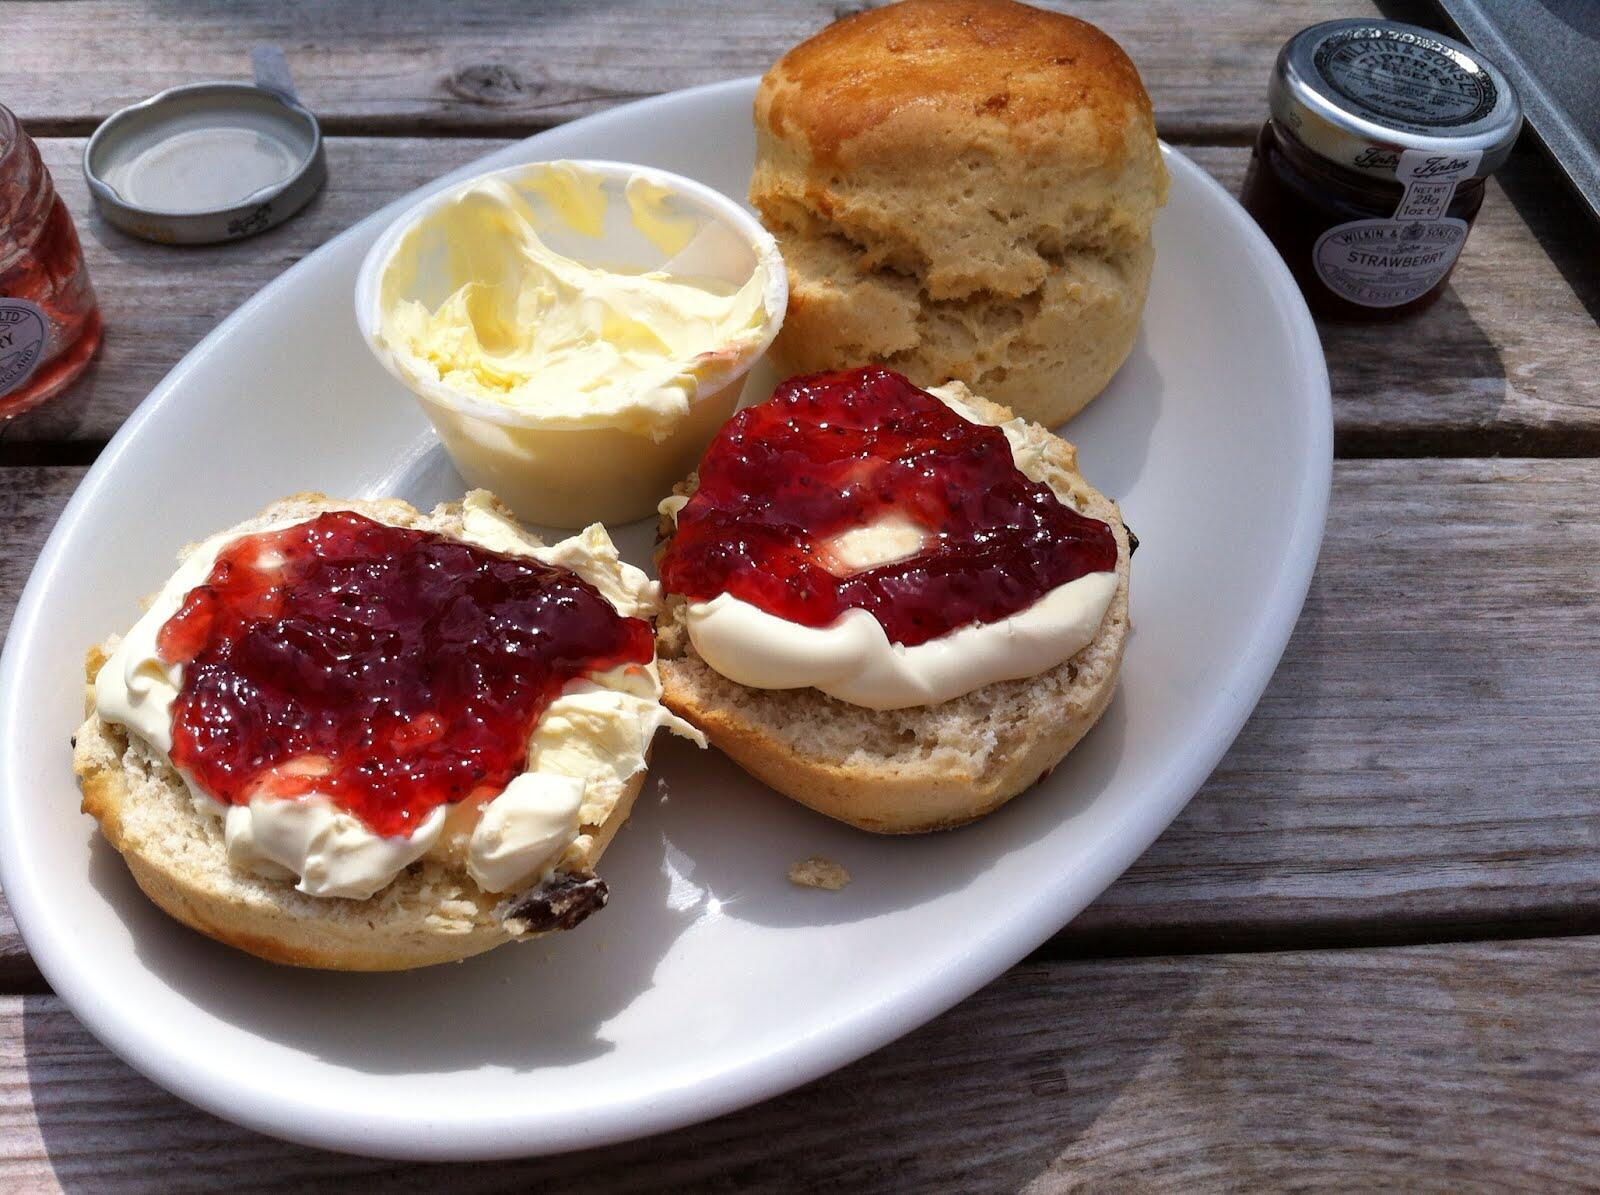 Shortly after this I was in a cafe where I asked for a cream tea which in the South is this - http://t.co/0E40ipr1mX